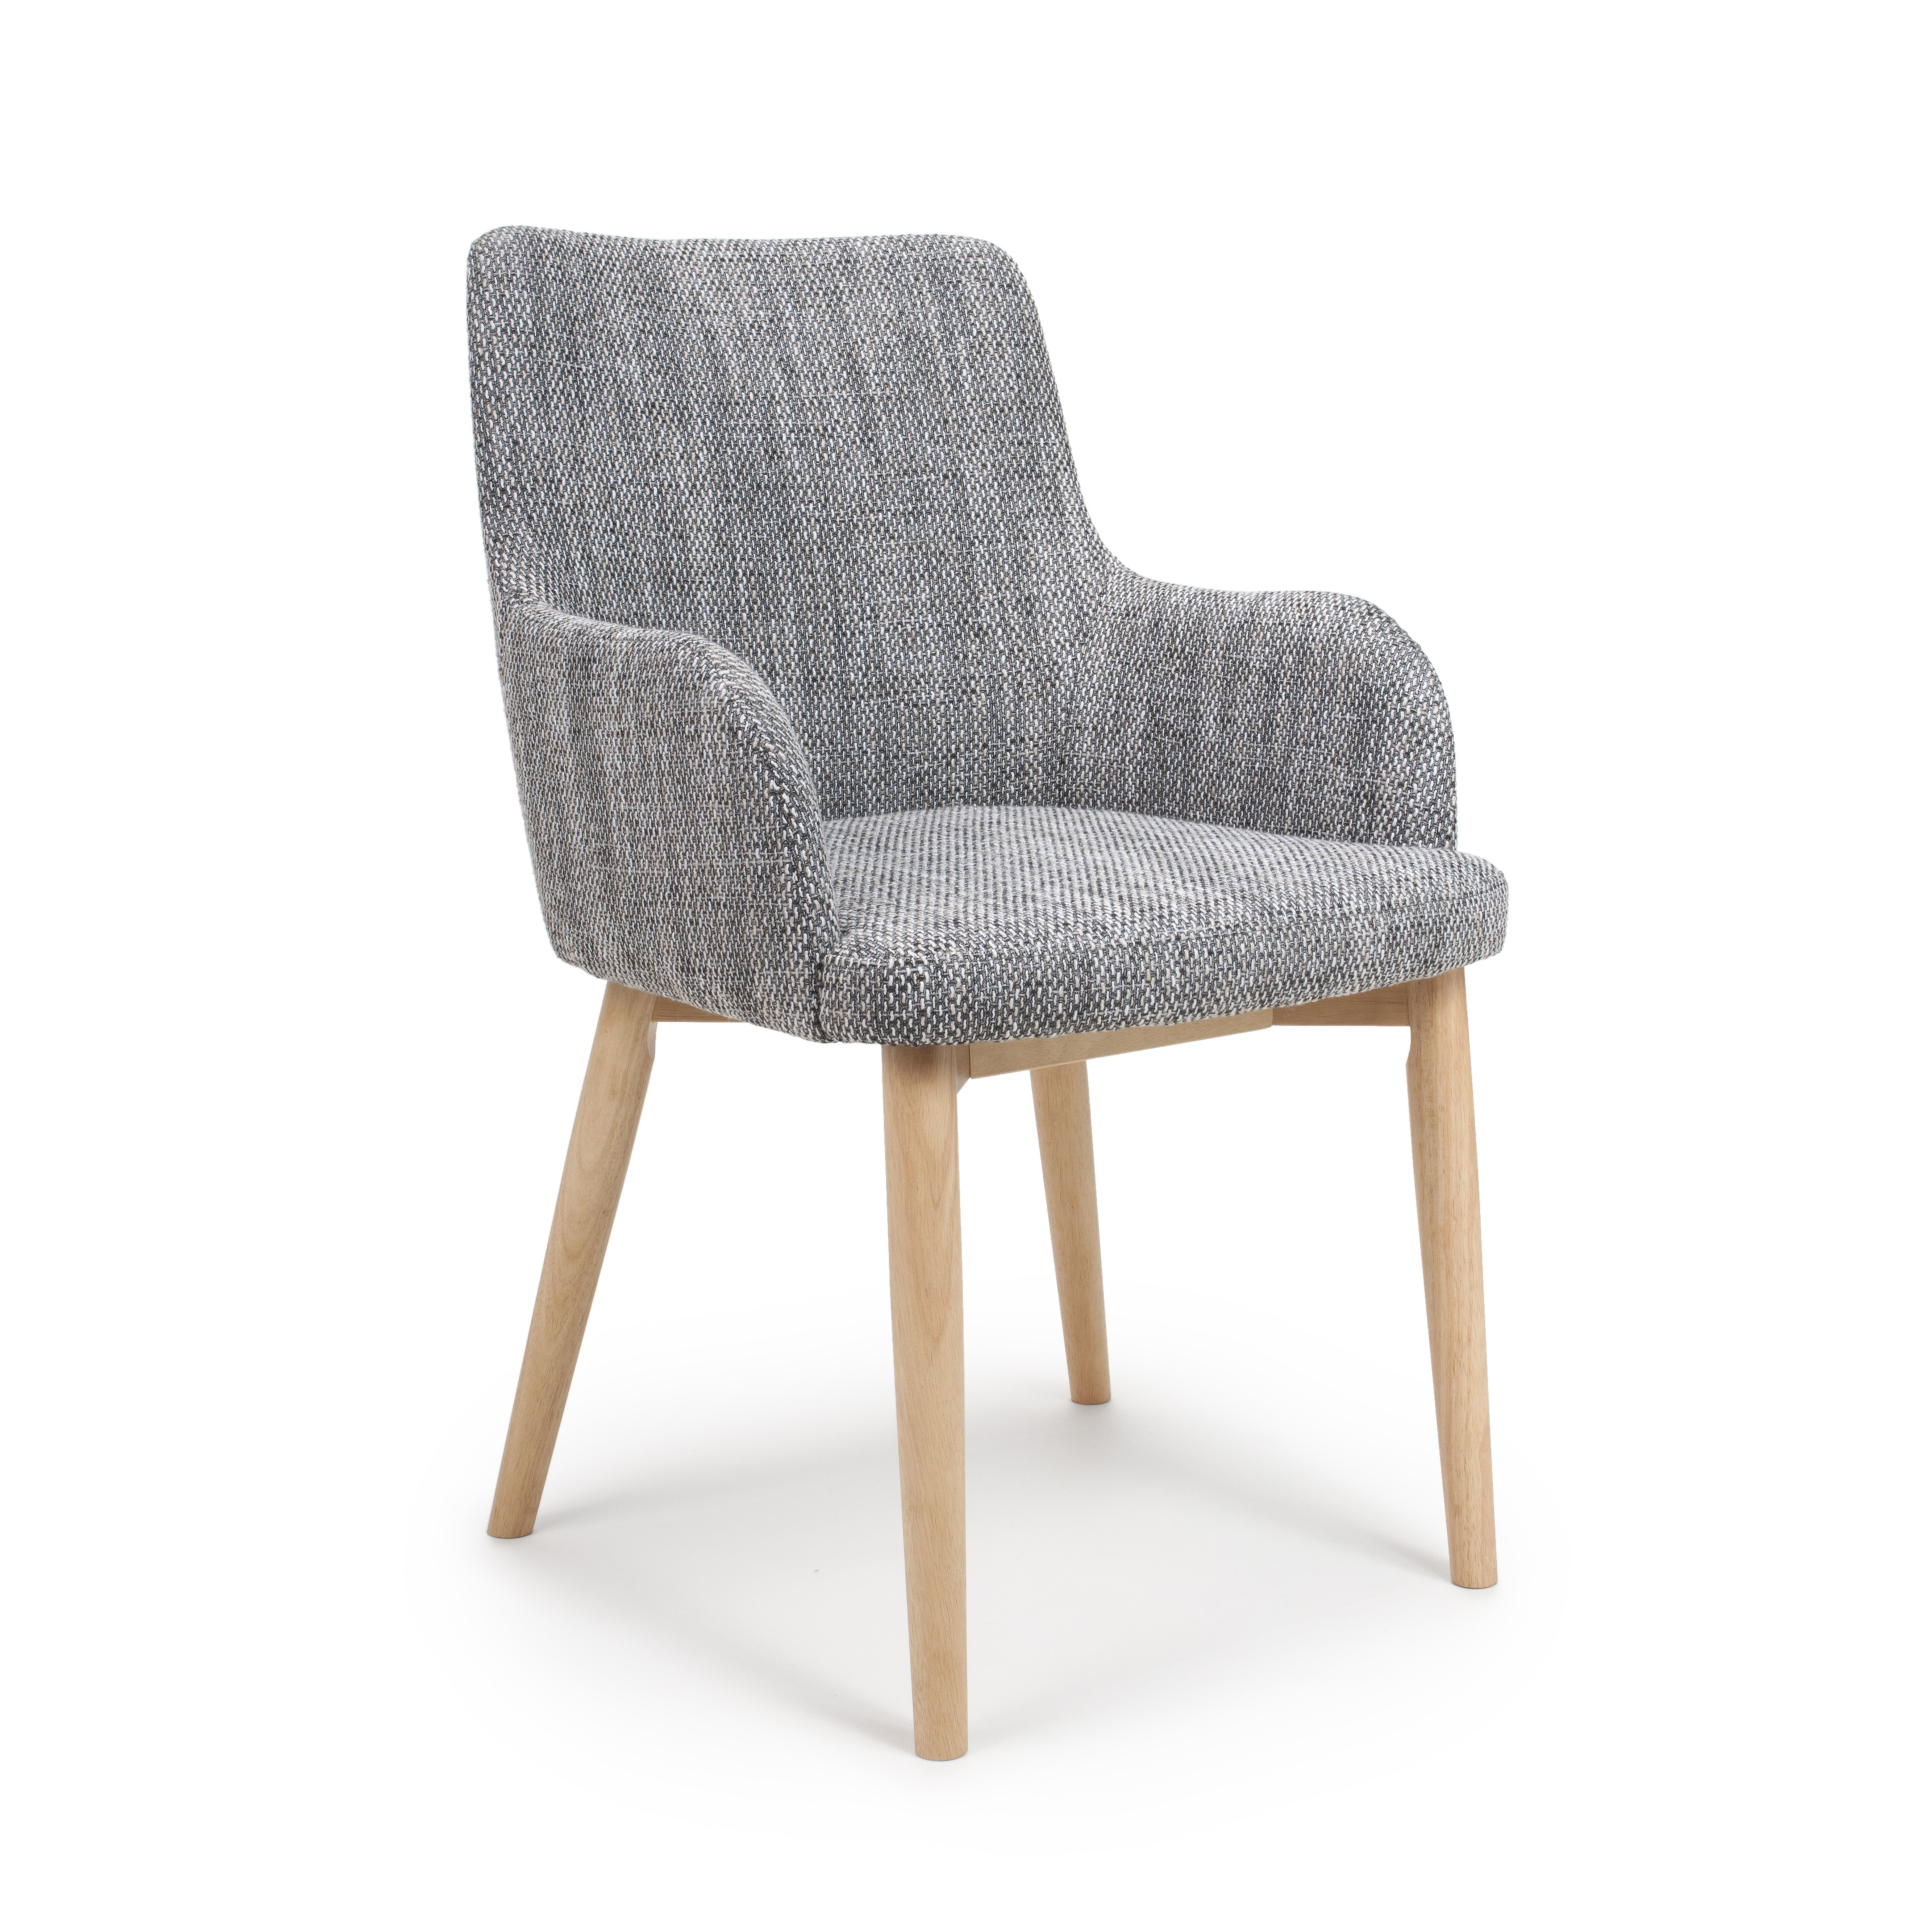 sidcup grey tweed fabric modern dining chairs grey. Black Bedroom Furniture Sets. Home Design Ideas